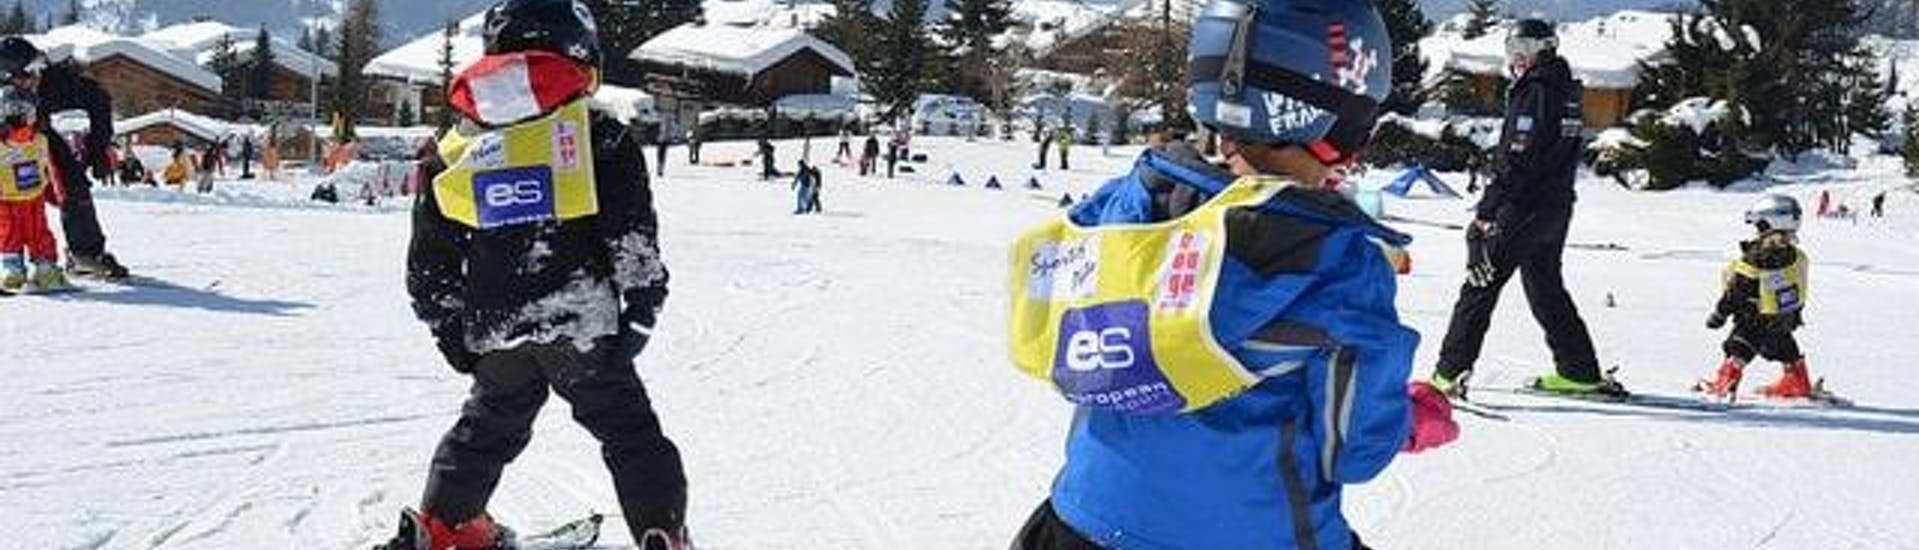 Kids Ski Lessons (6-12 y.) for Beginners - Morning